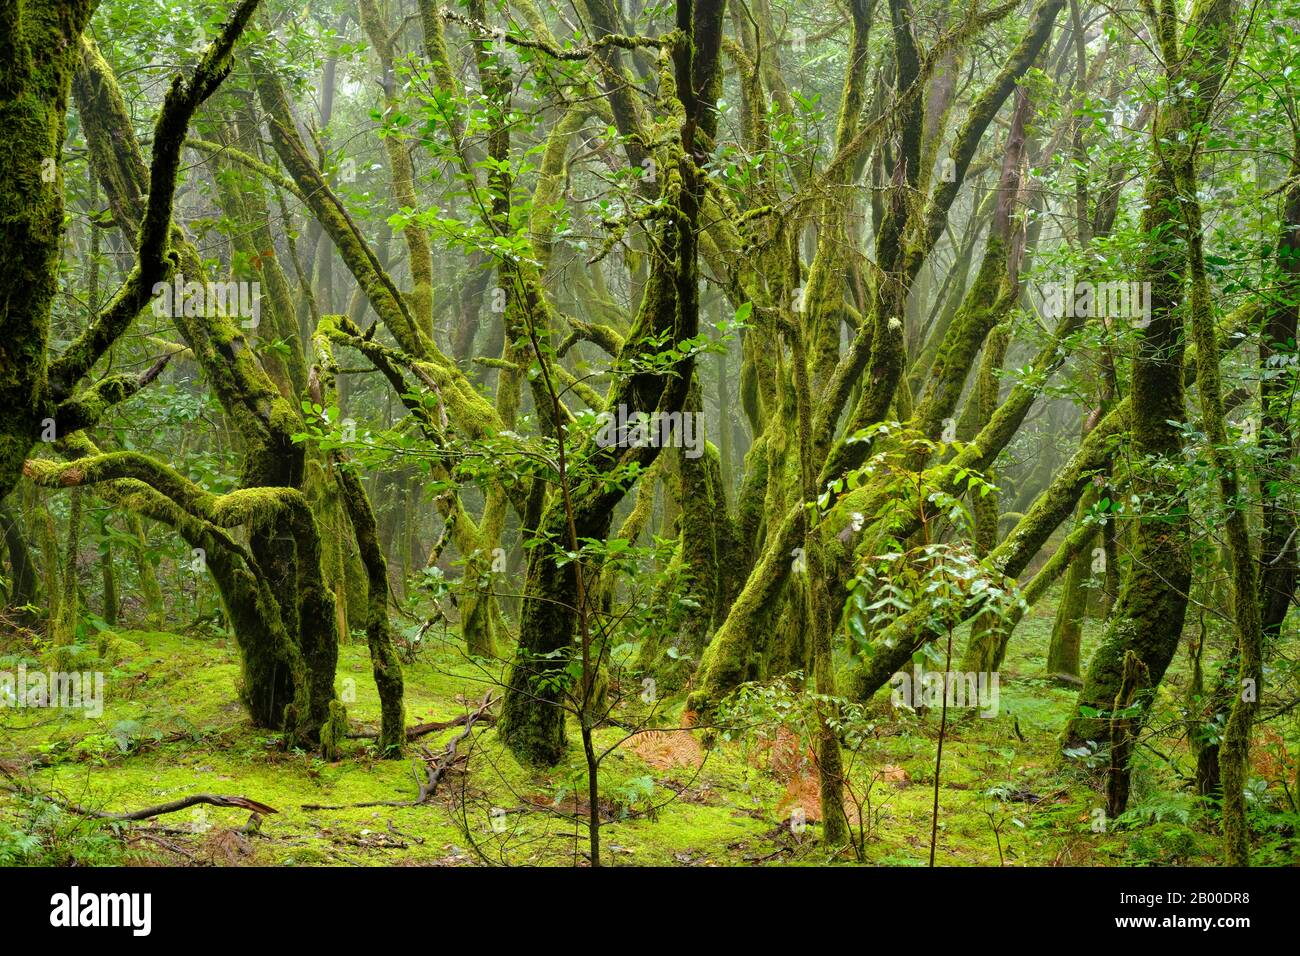 Moss-covered trees in cloud forest, Garajonay National Park, La Gomera, Canary Islands, Spain Stock Photo